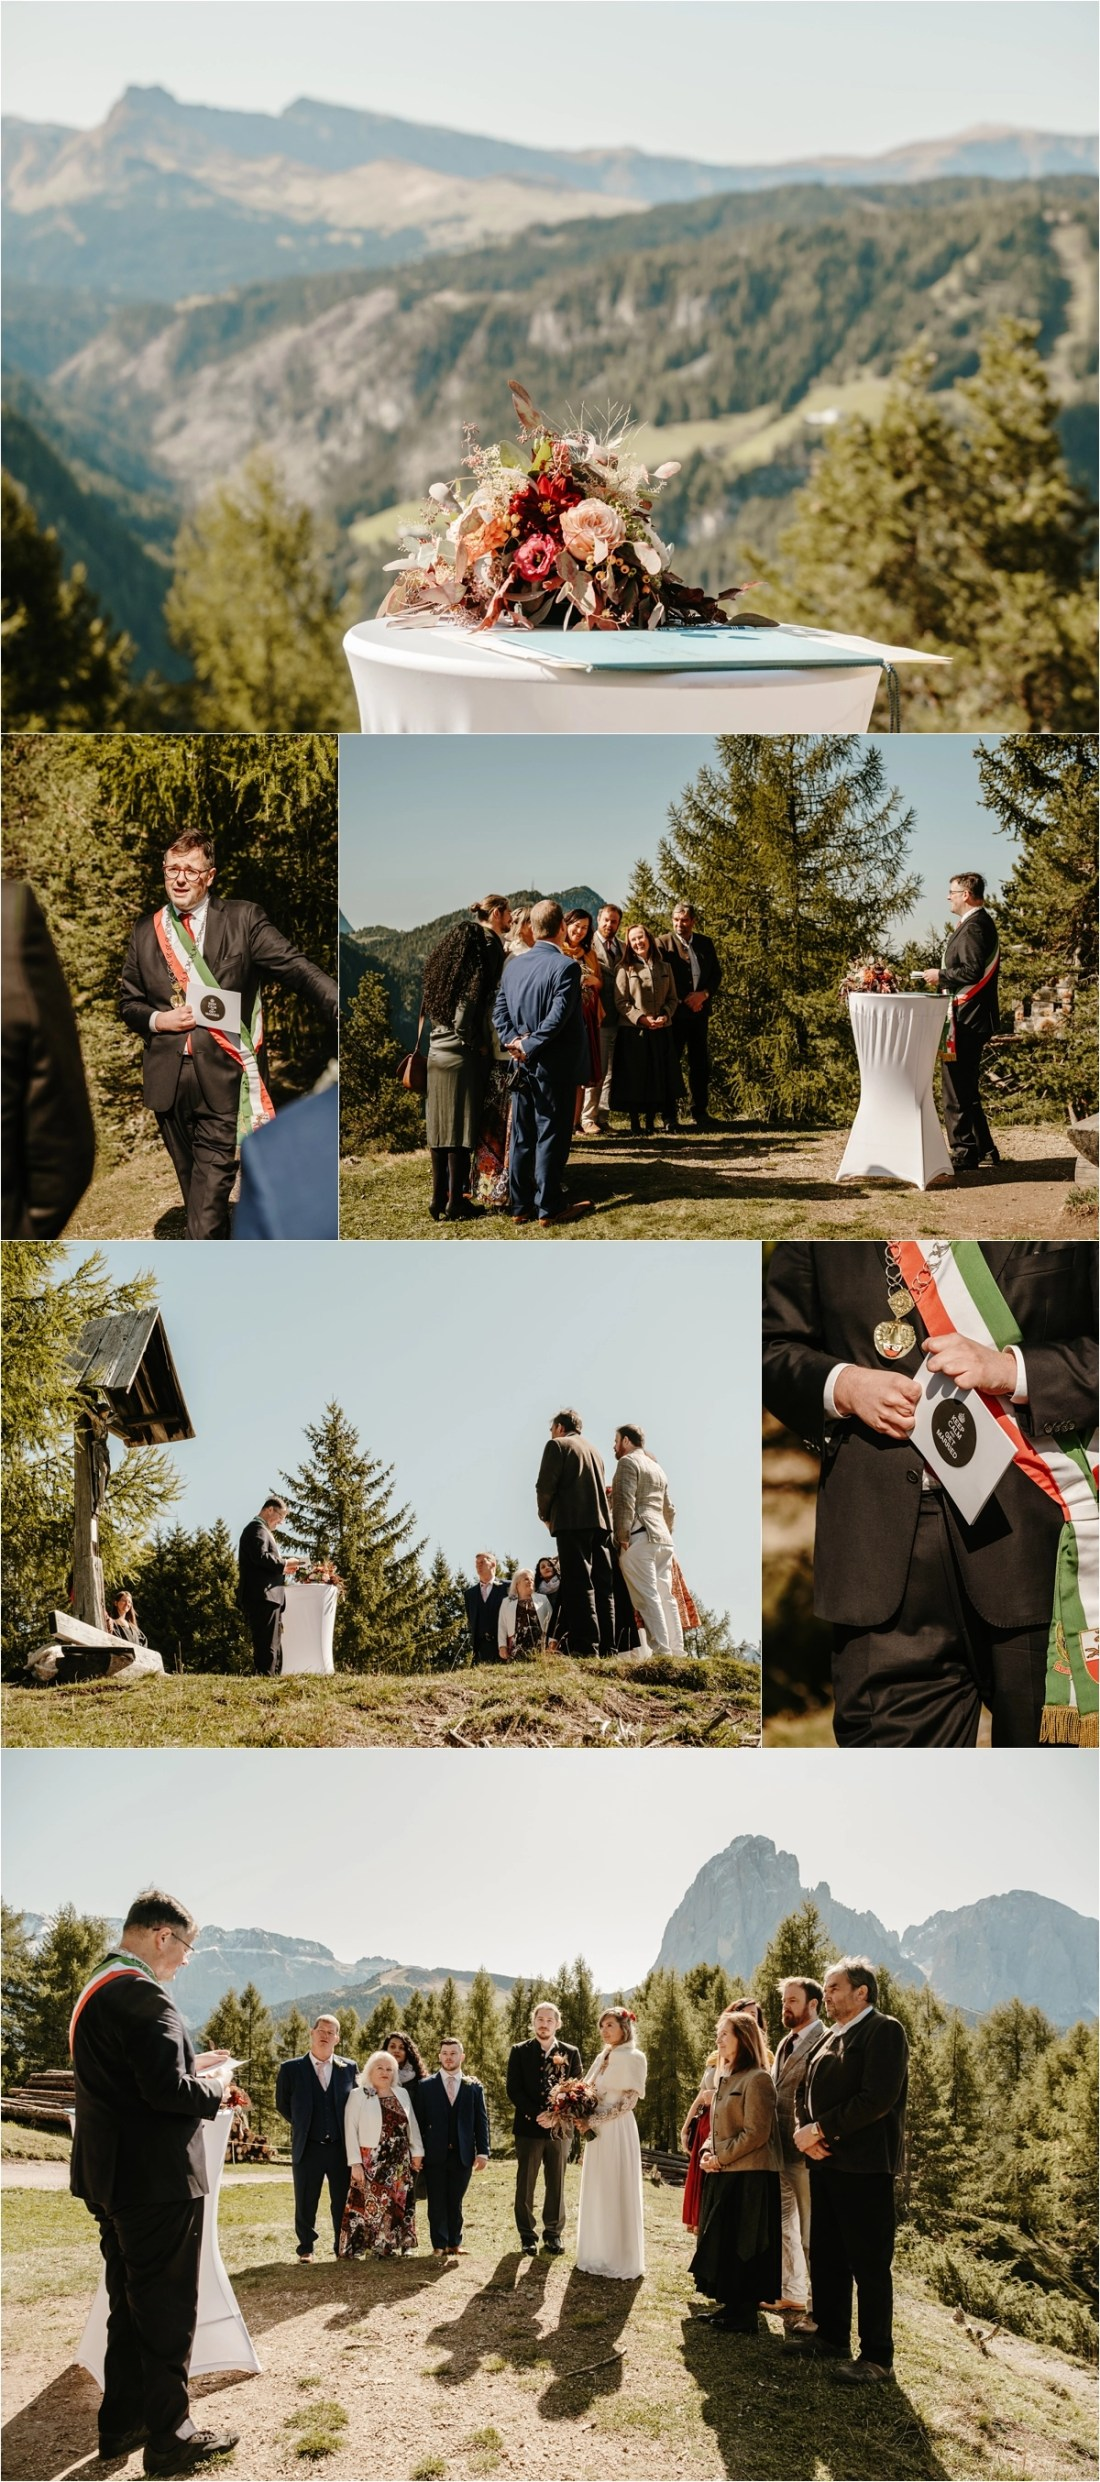 An outdoor Elopement ceremony in Selva Val Gardena. Photos by Wild Connections Photography